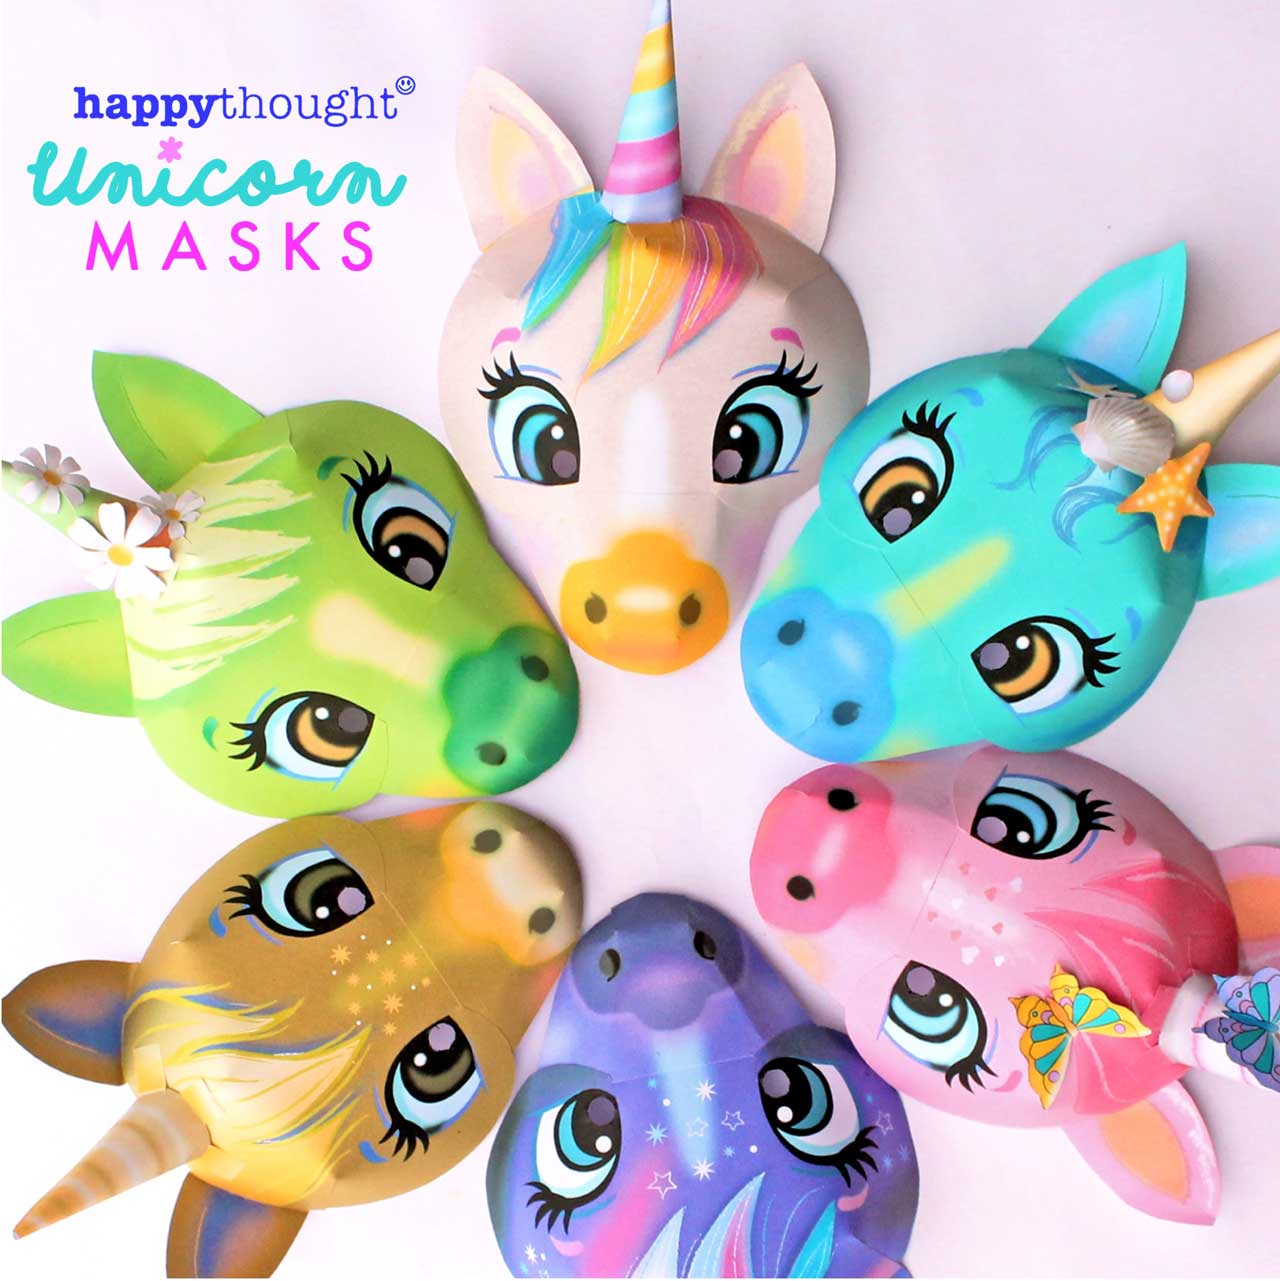 How to make a unicorn mask templates and instructions included